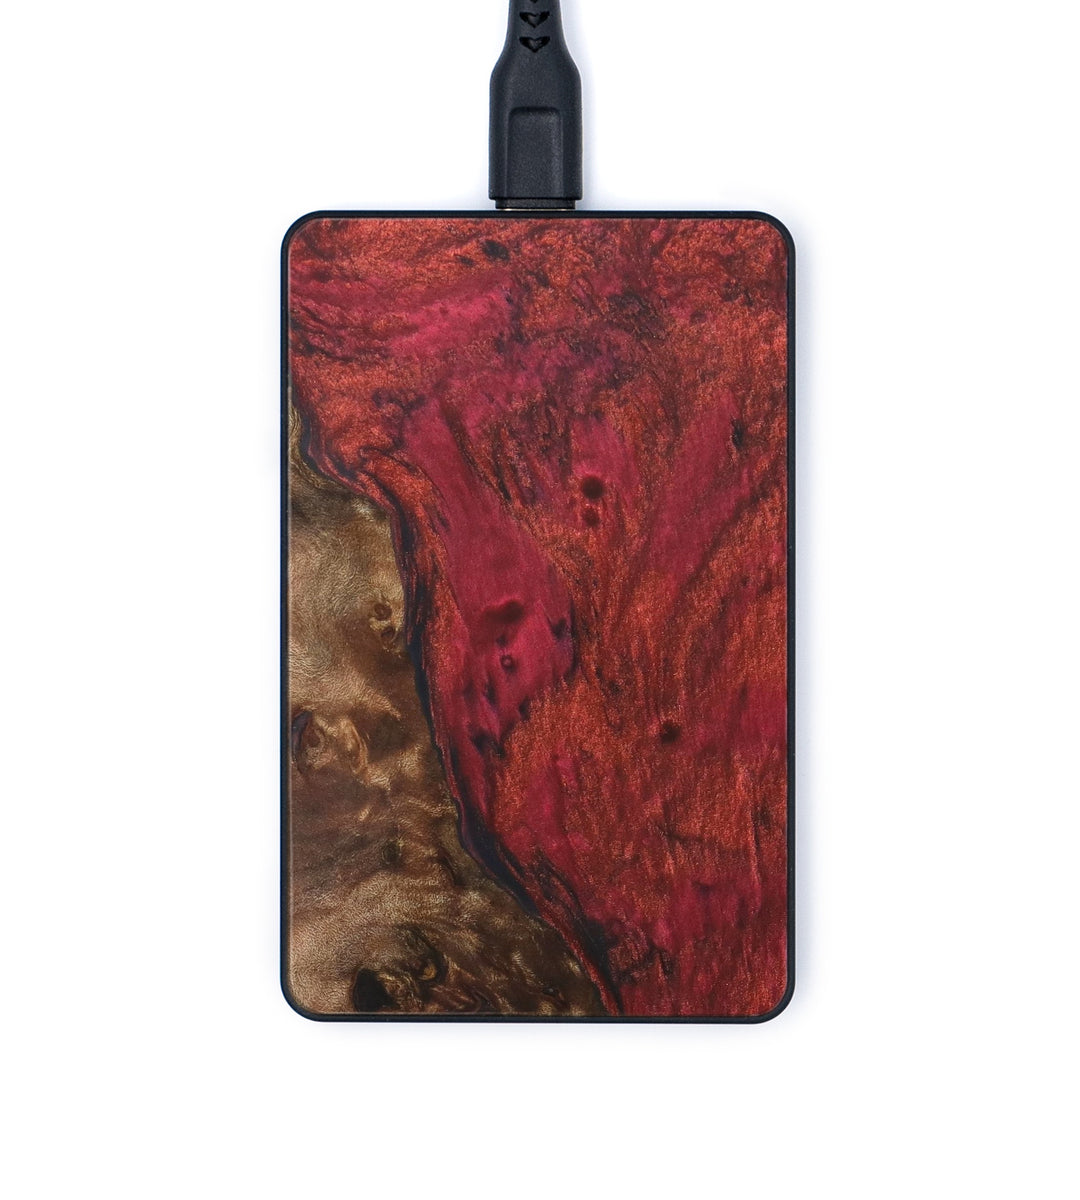 Thin Wireless Charger - Karyl (Dark Red, 336421)